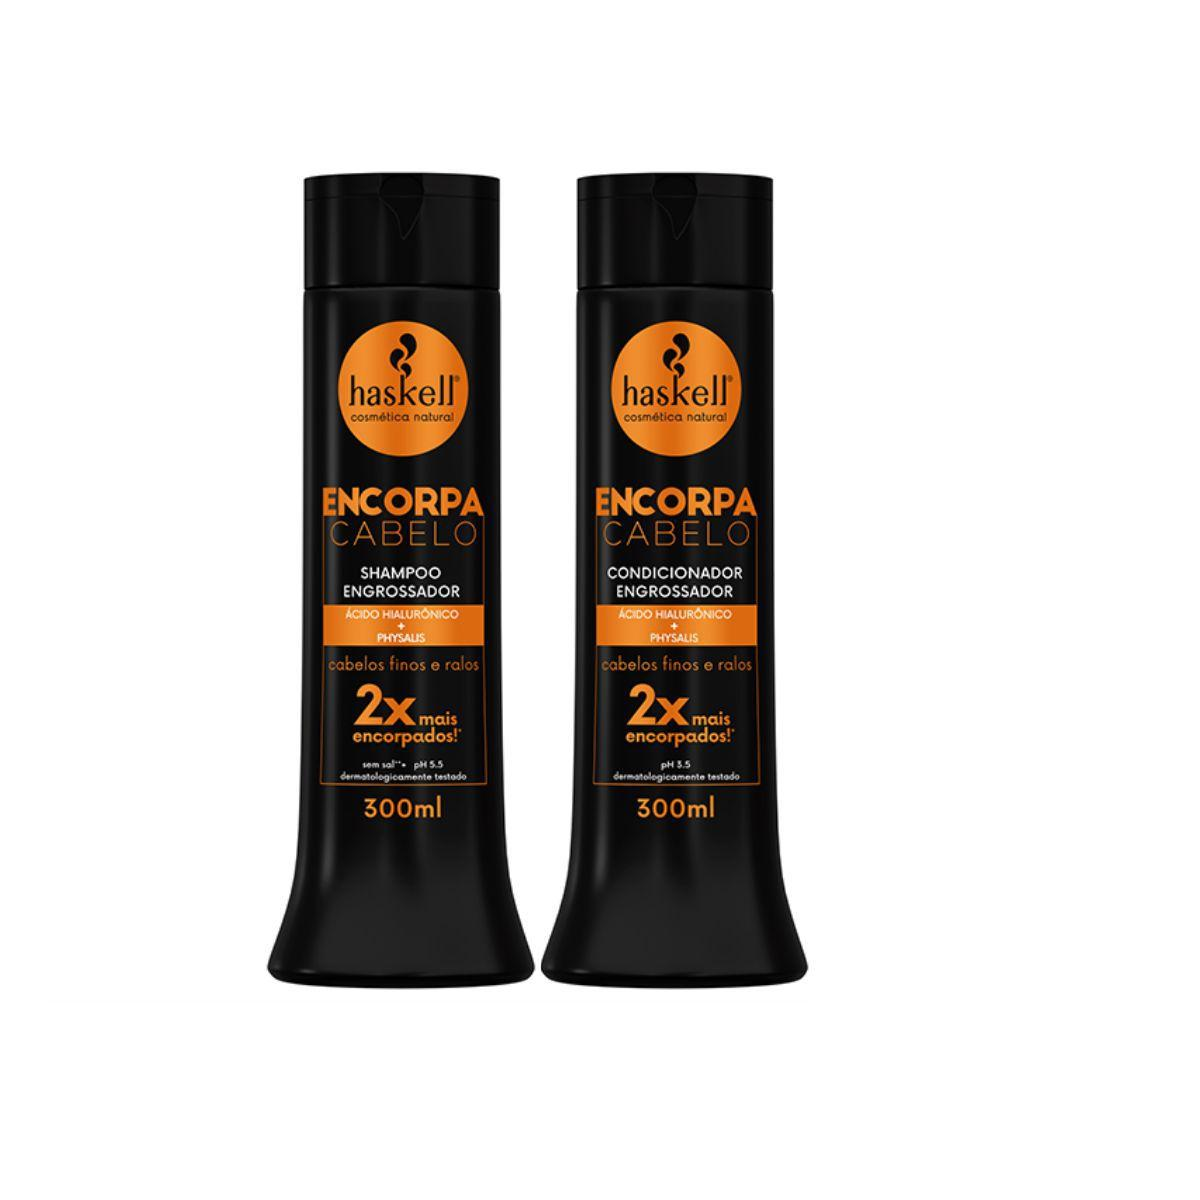 Kit Encorpa Cabelo Haskell ( 2 itens )